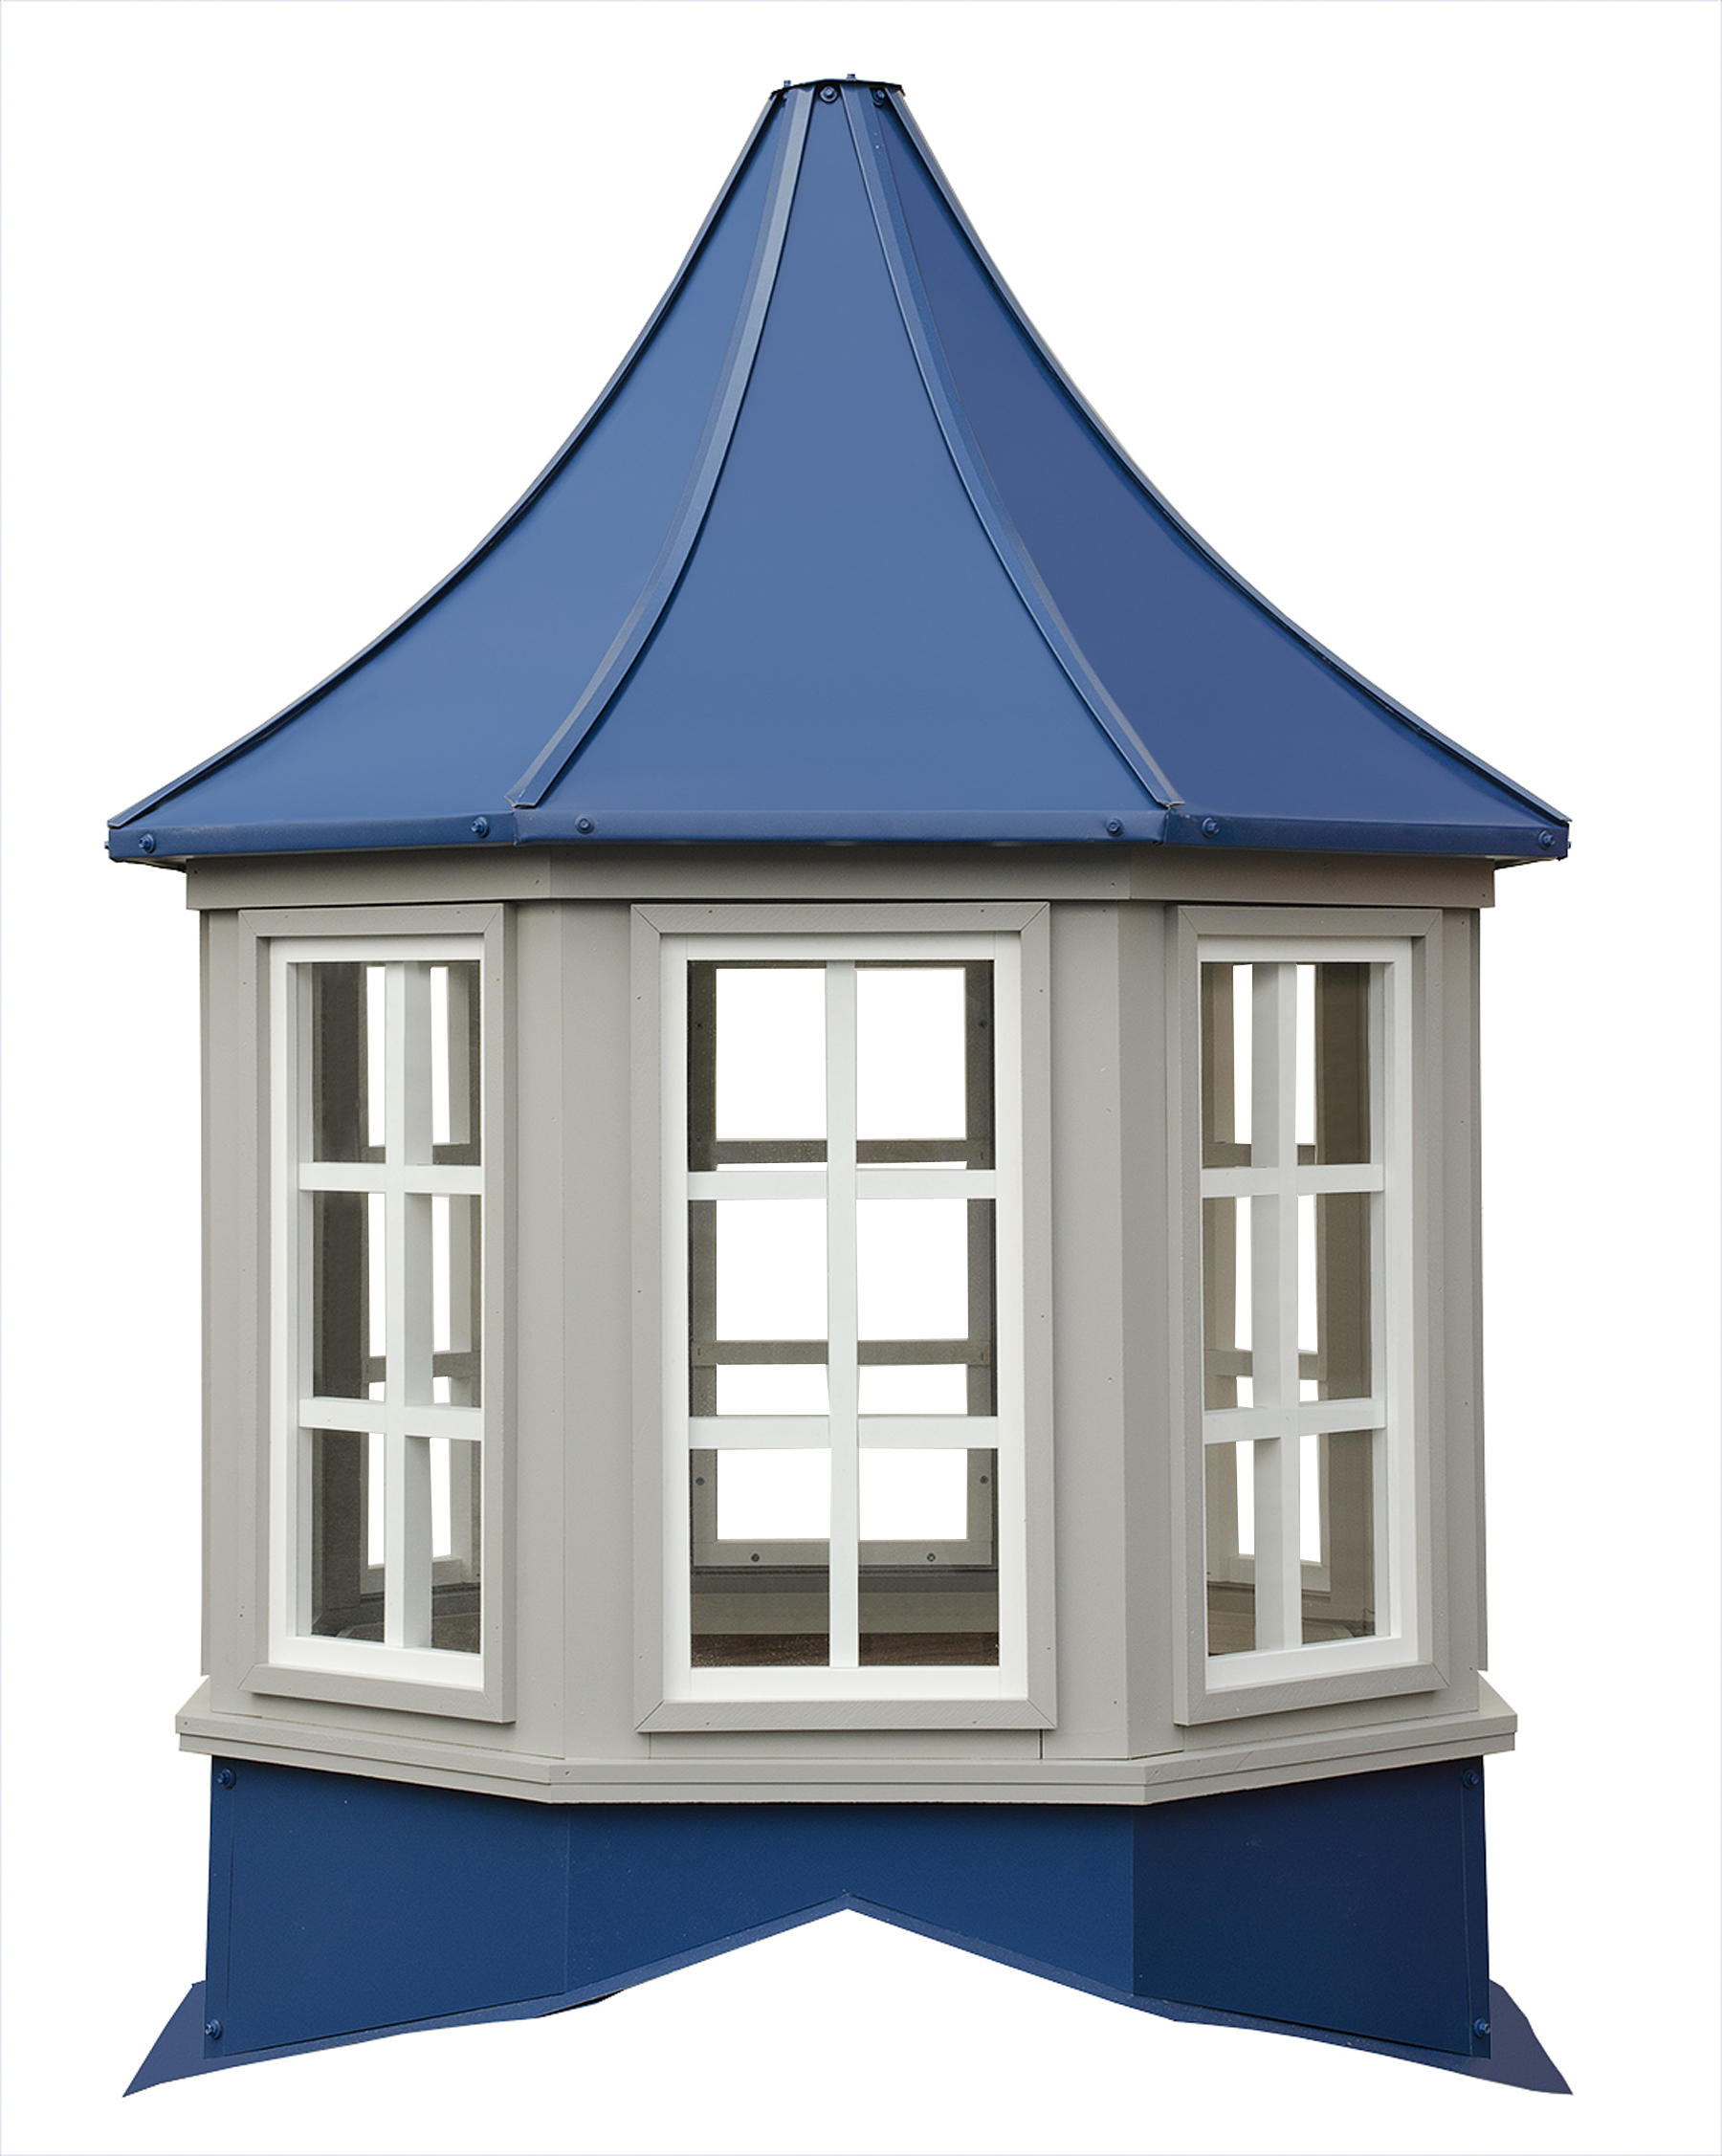 Winchester meteal cupola add to the appeal of your barn for Shed cupola